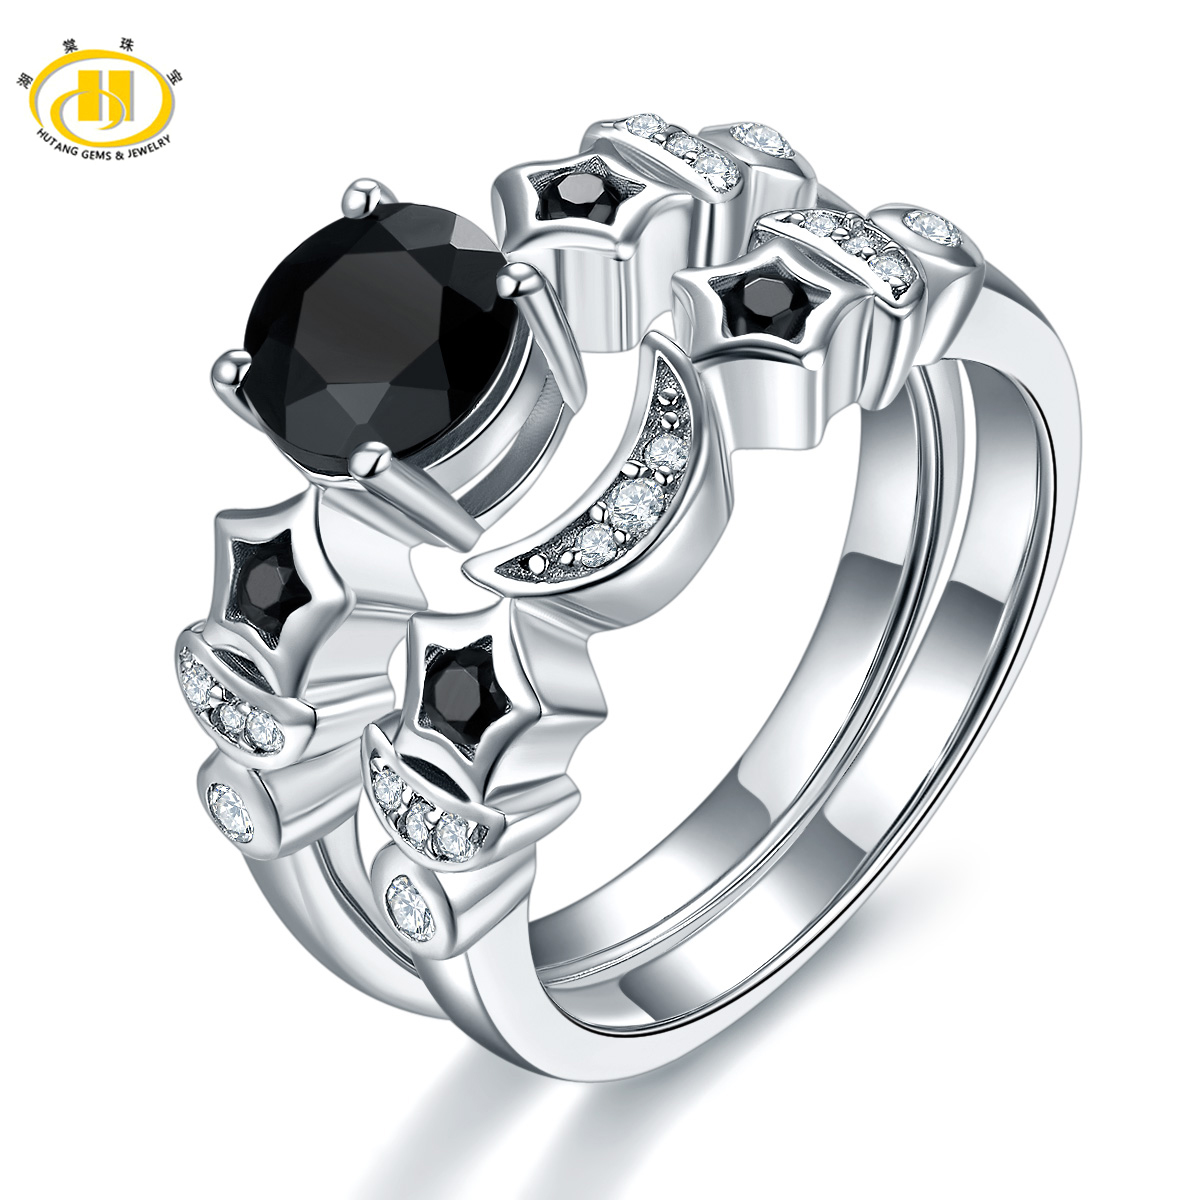 Hutang Double Ring Natural Black Spinel Solid 925 Sterling Silver Ring Sets for Women Wedding Best Gift 2017 New Arrival